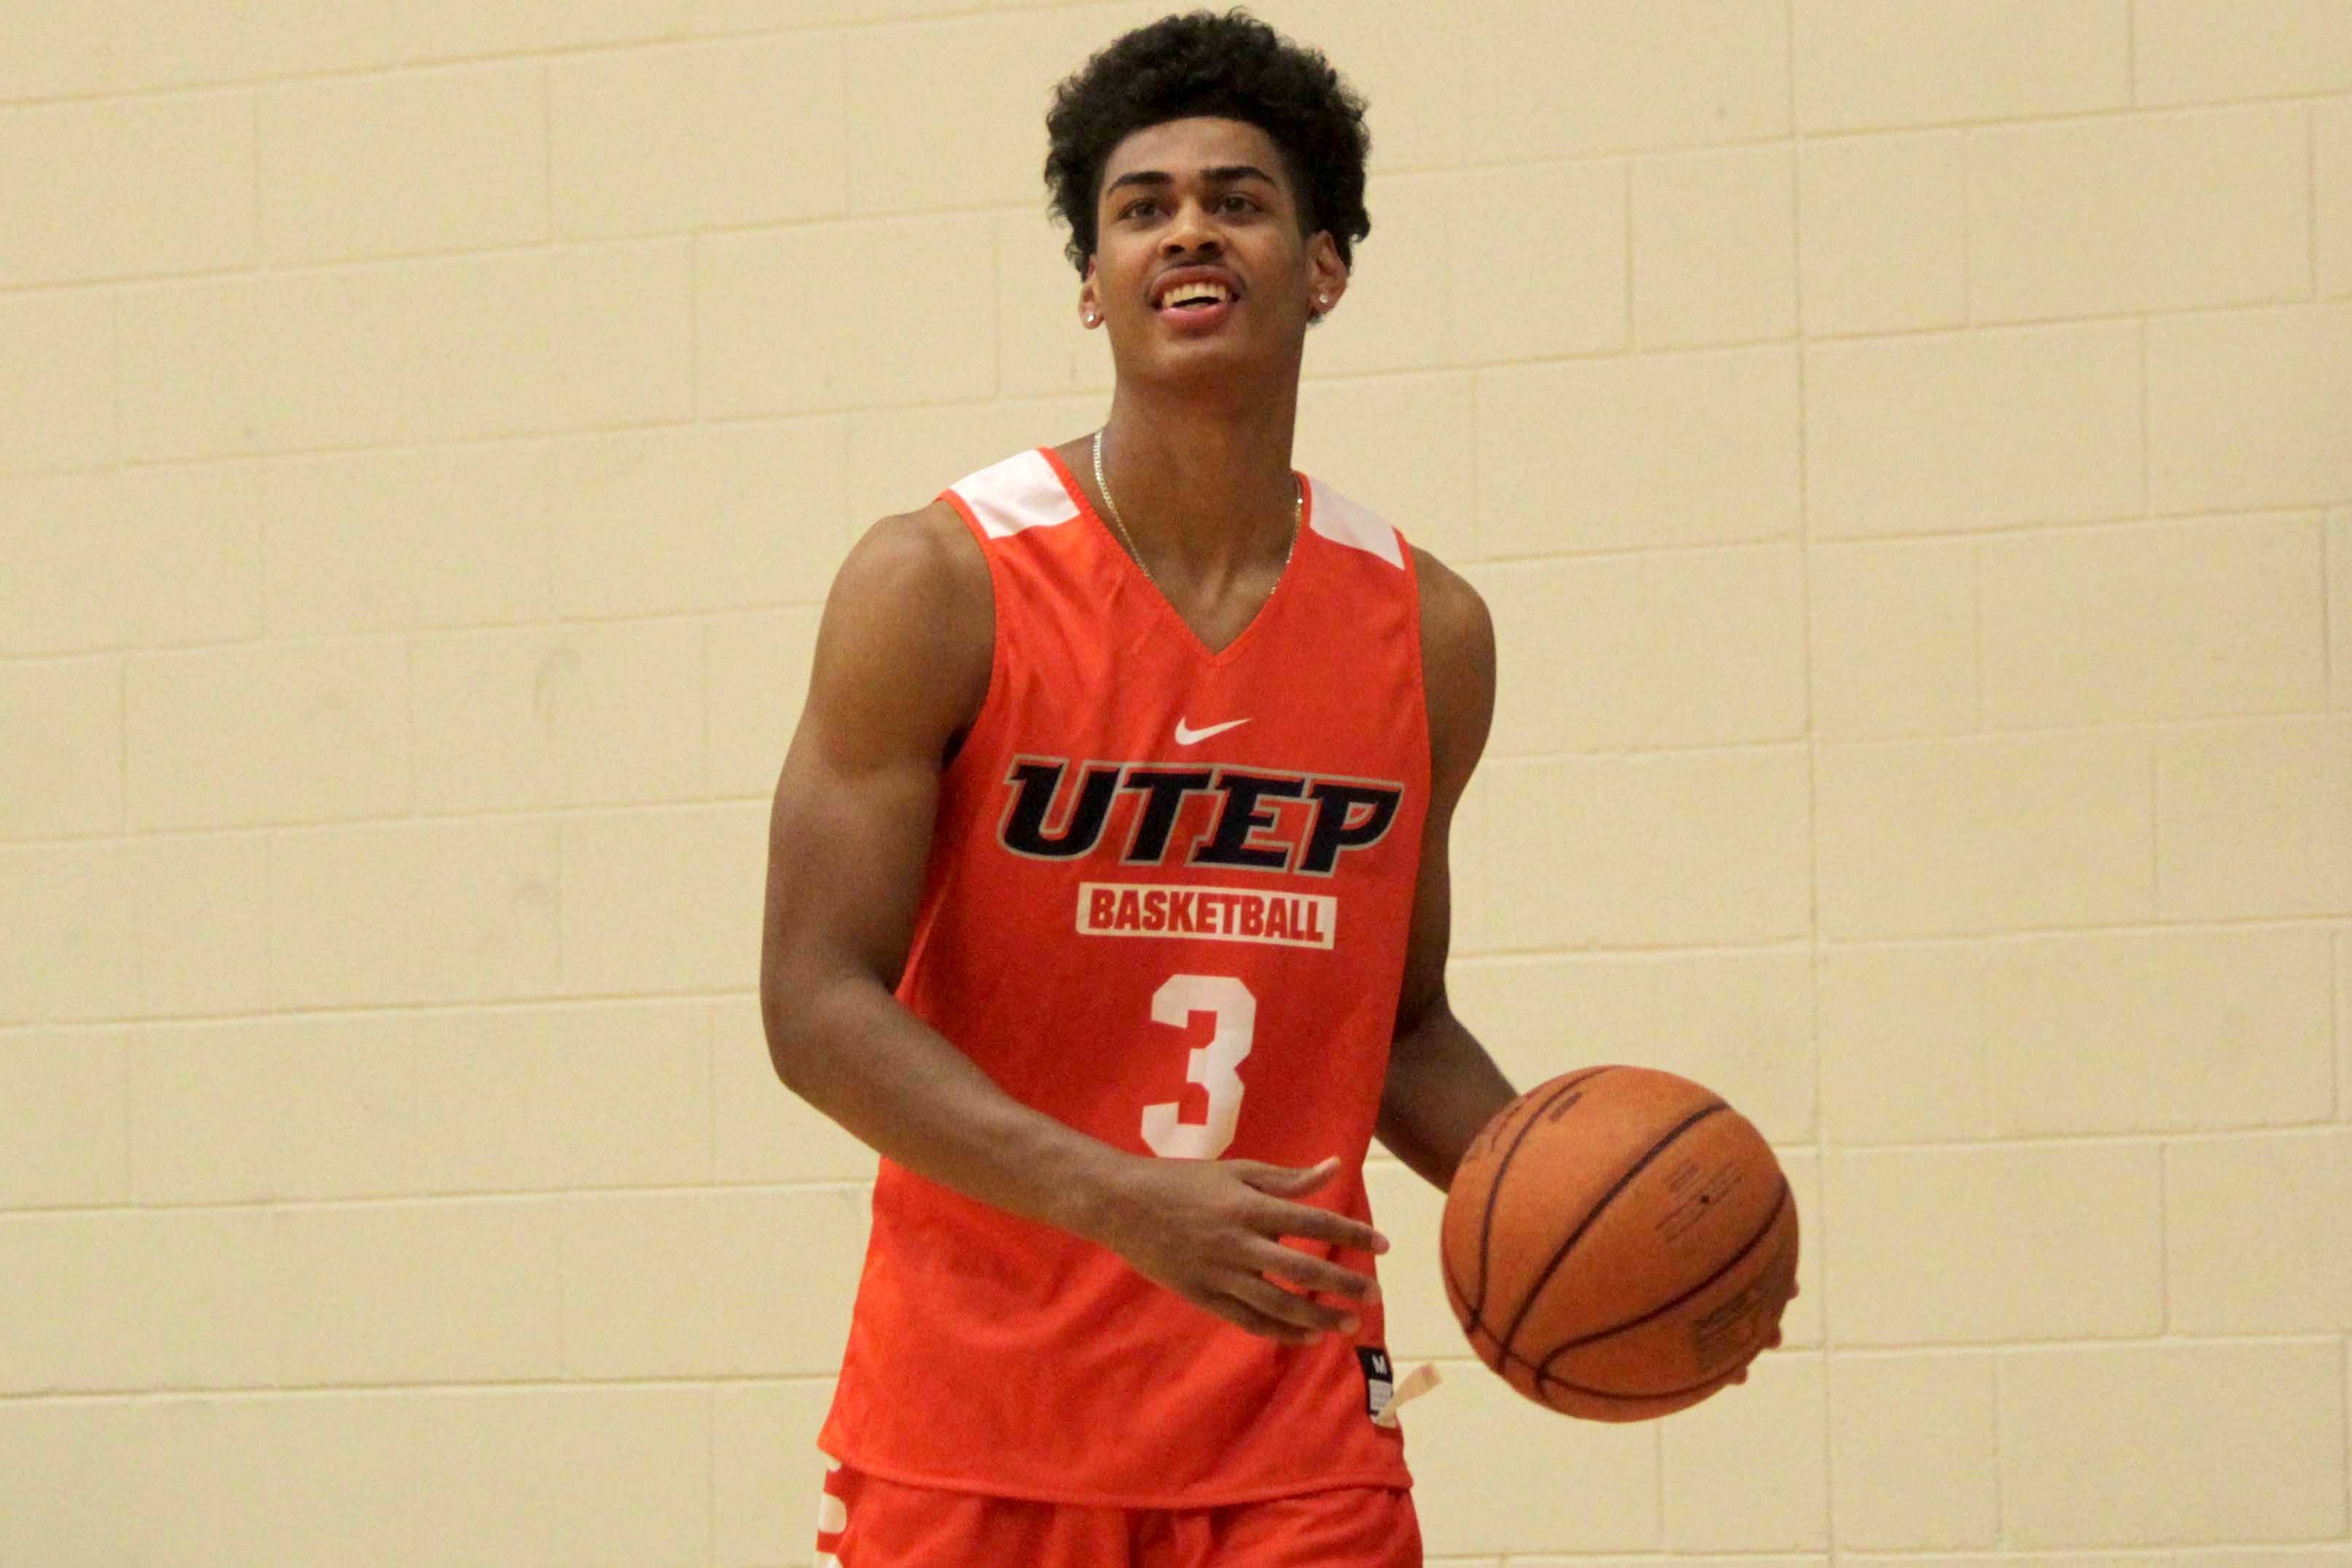 Tim Cameron claims he grew as a player and now is ready for competing at the Conference USA level.